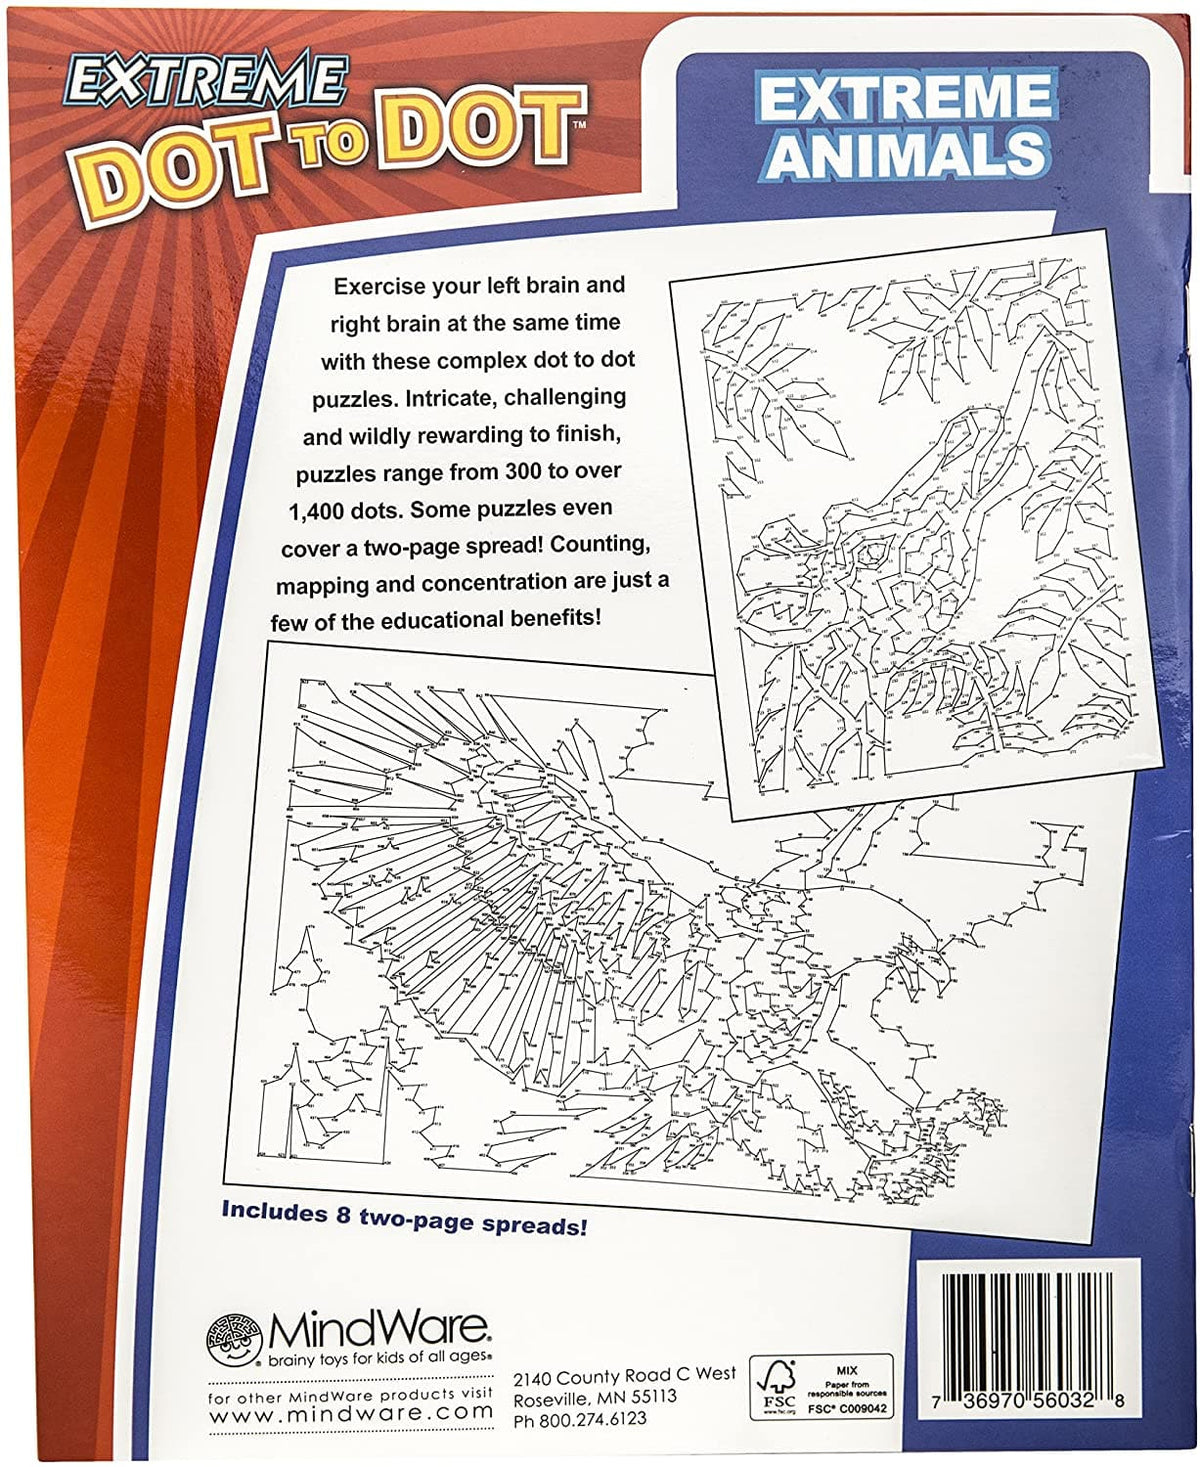 Extreme Dot to Dot - Extreme Animals